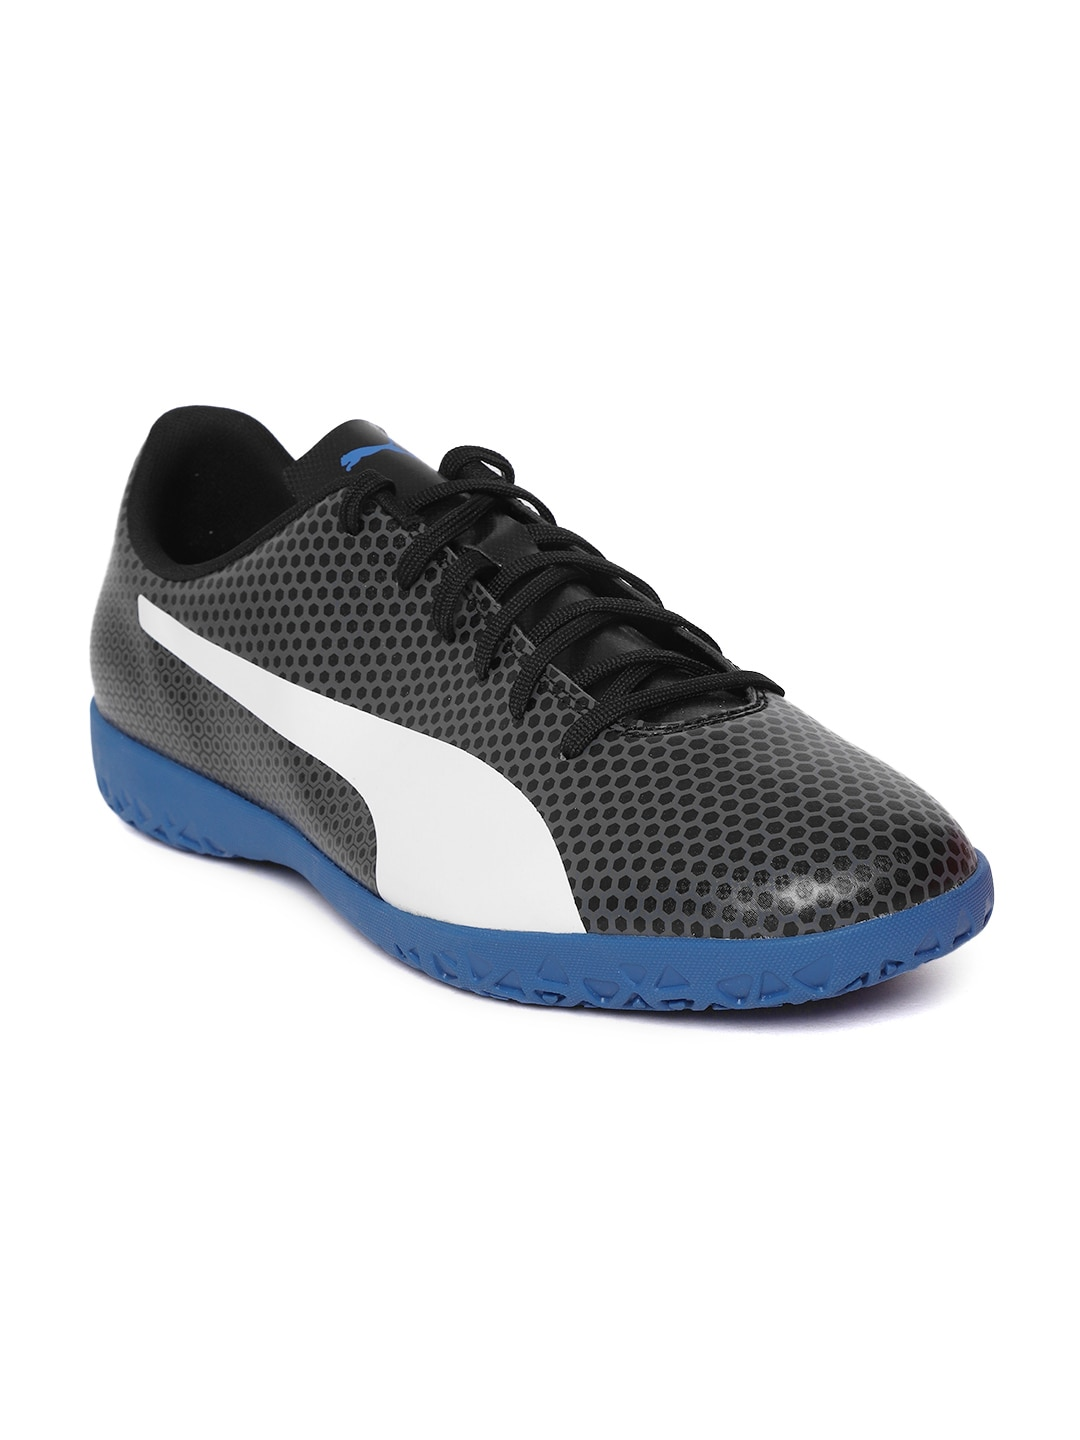 47565cbf4da9 Buy Puma Men Black Spirit TT Turf Soccer Shoes - Sports Shoes for ...